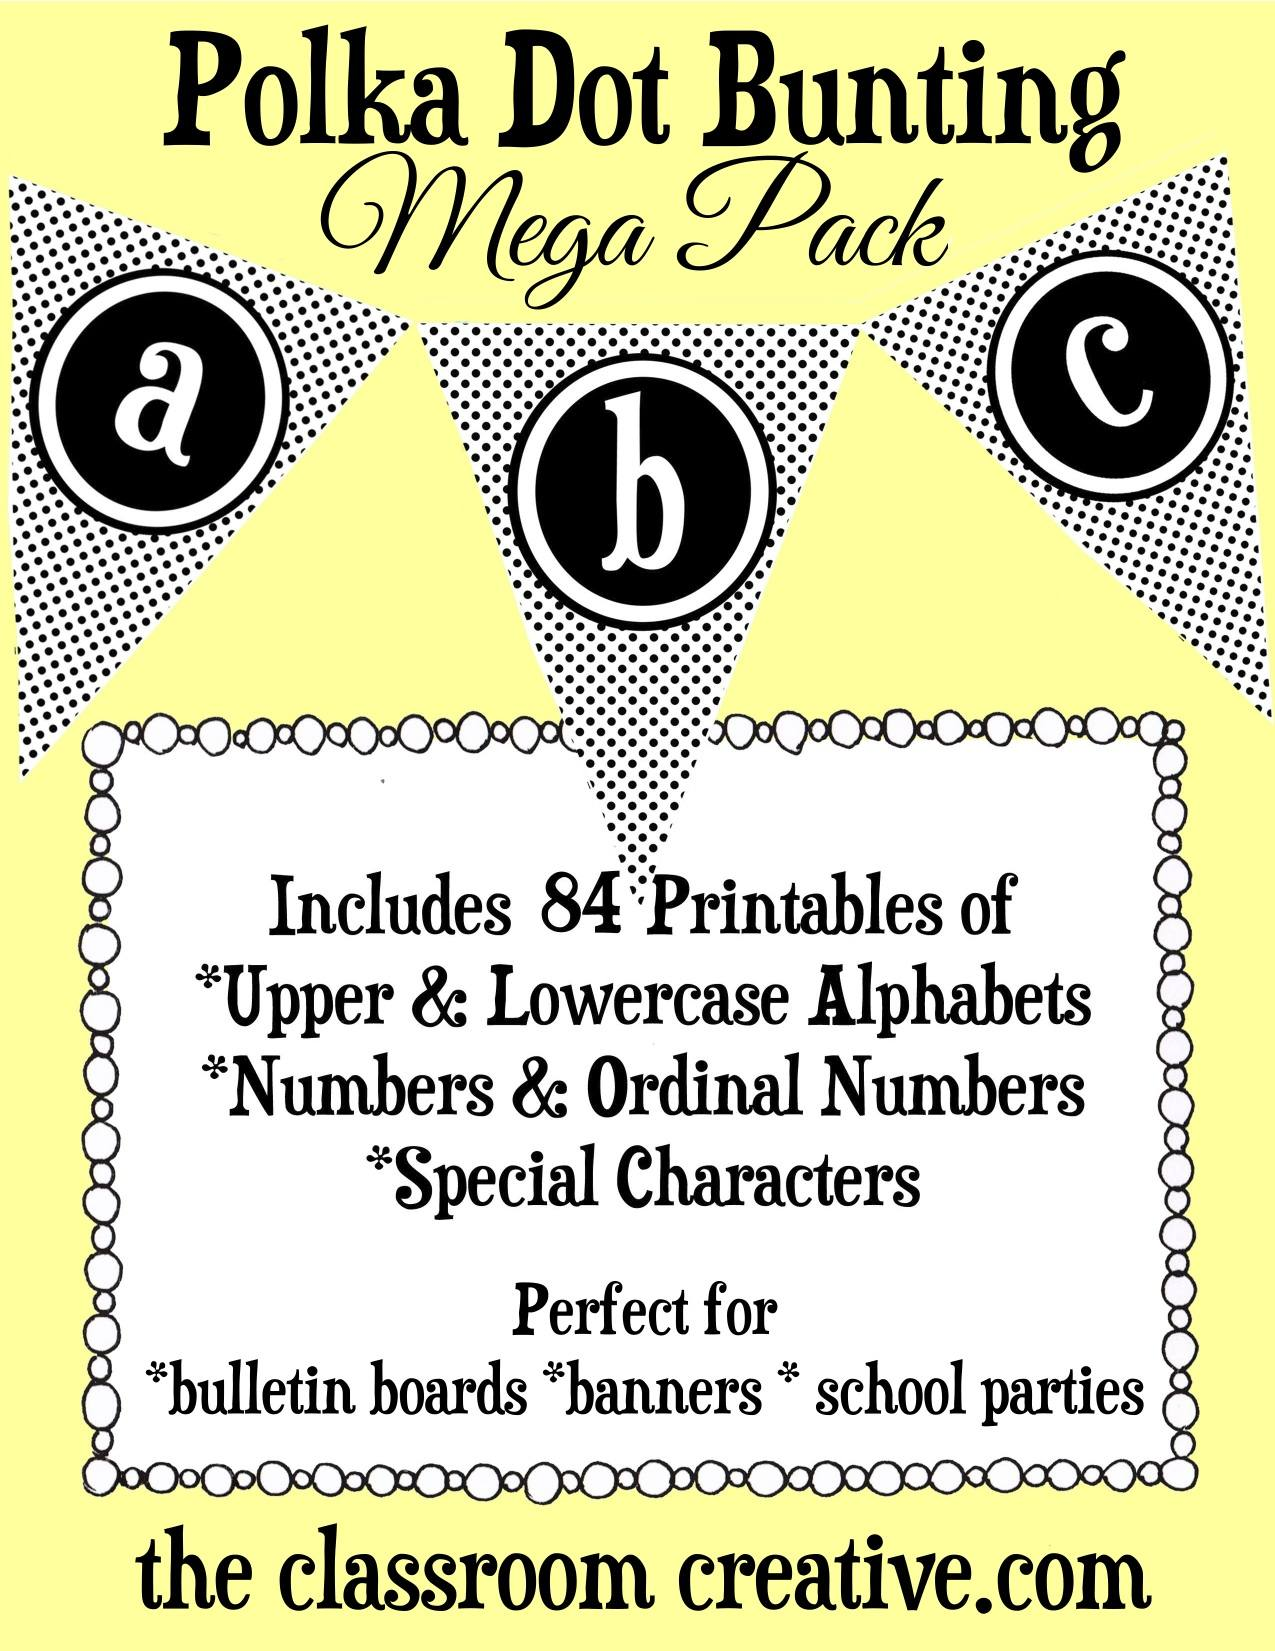 Free Printable Classroom Decorations Download Free Clip Art Free Clip Art On Clipart Library